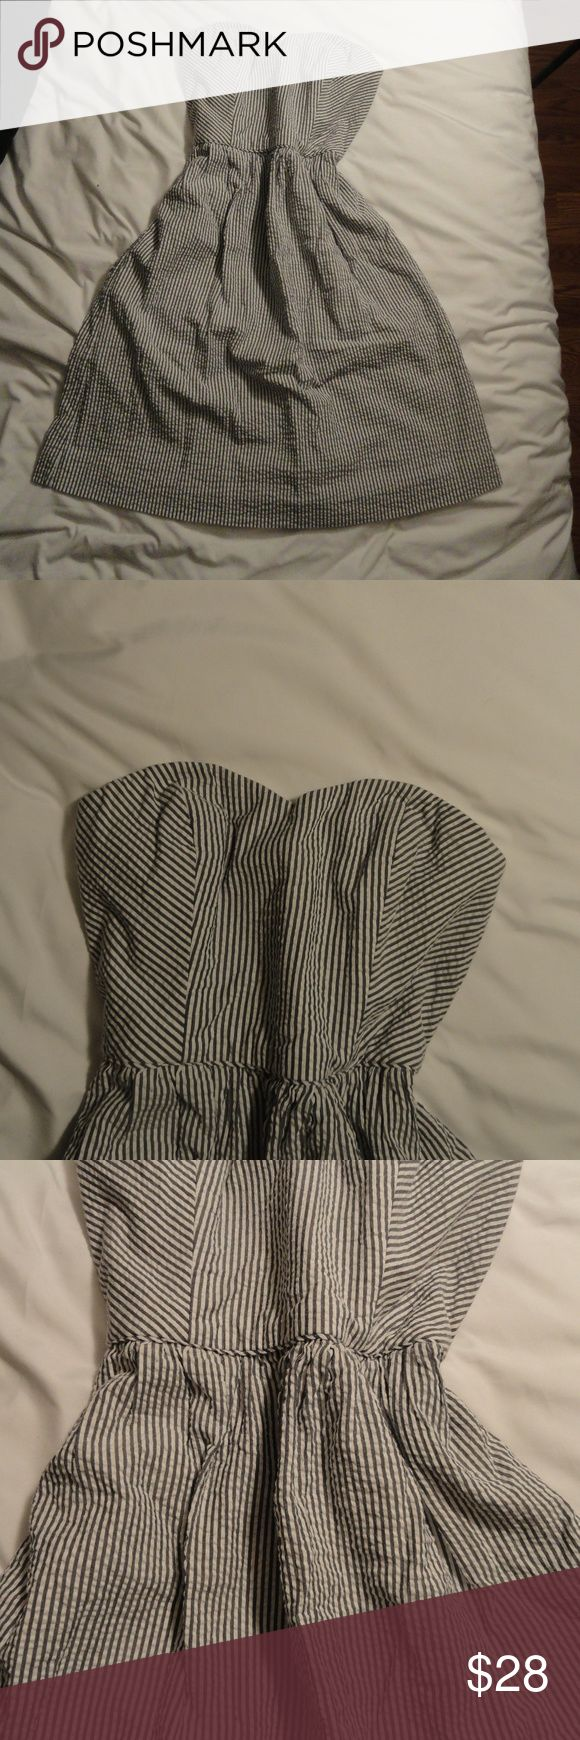 J. Crew - Mandy Dress - Seersucker Strapless Dress Super Adorable Seersucker Strapless Dress from J.Crew - Size 00 - Features a back zipper and fully lined.  Blue/Gray and White Striped.  100% Cotton Material both shell & Lining.  Fitted Bodice with boning for added support leads way to a looser fitting skirt.  Perfect for parties & summer!  Sweetheart neckline with grips to keep the dress in place.  A Line Silhouette that falls just above the knee J. Crew Dresses Strapless